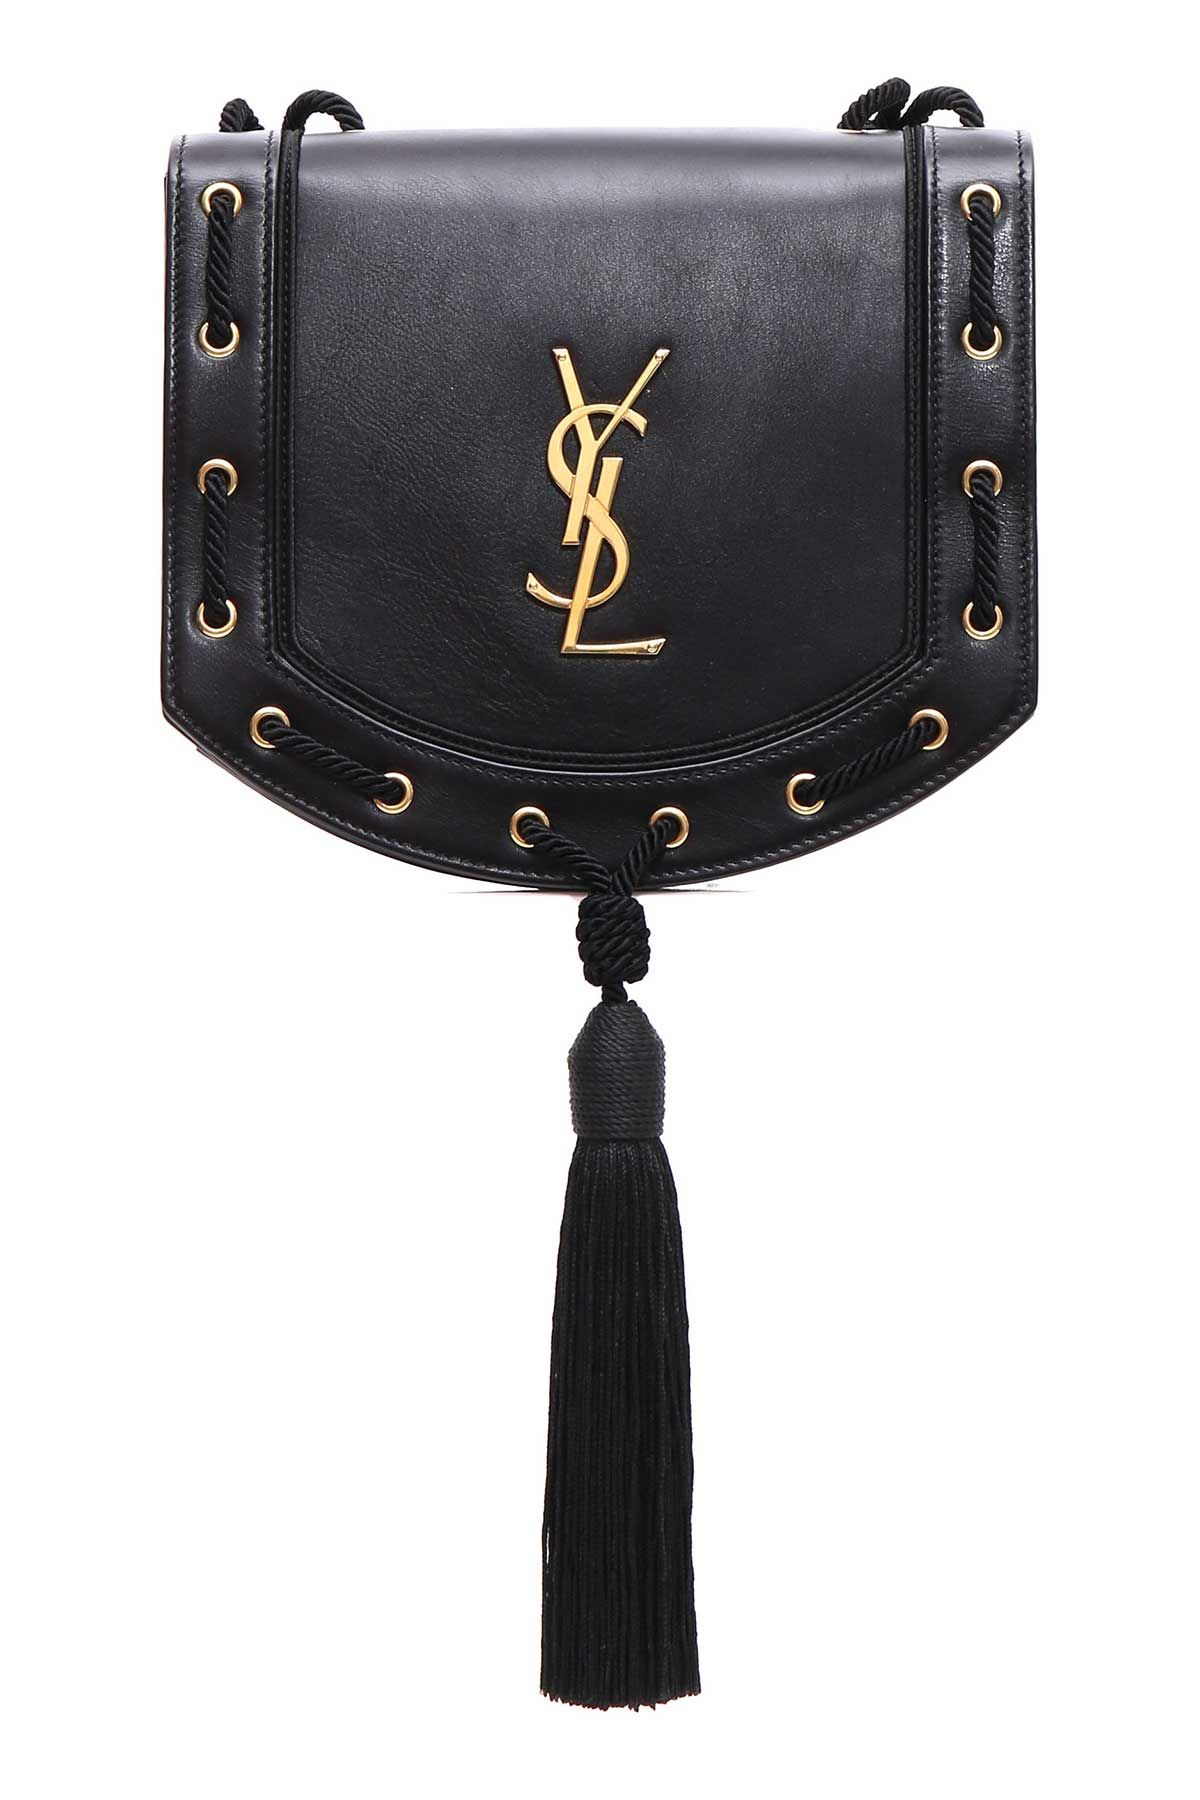 Saint Laurent Tassel Shoulder Bag